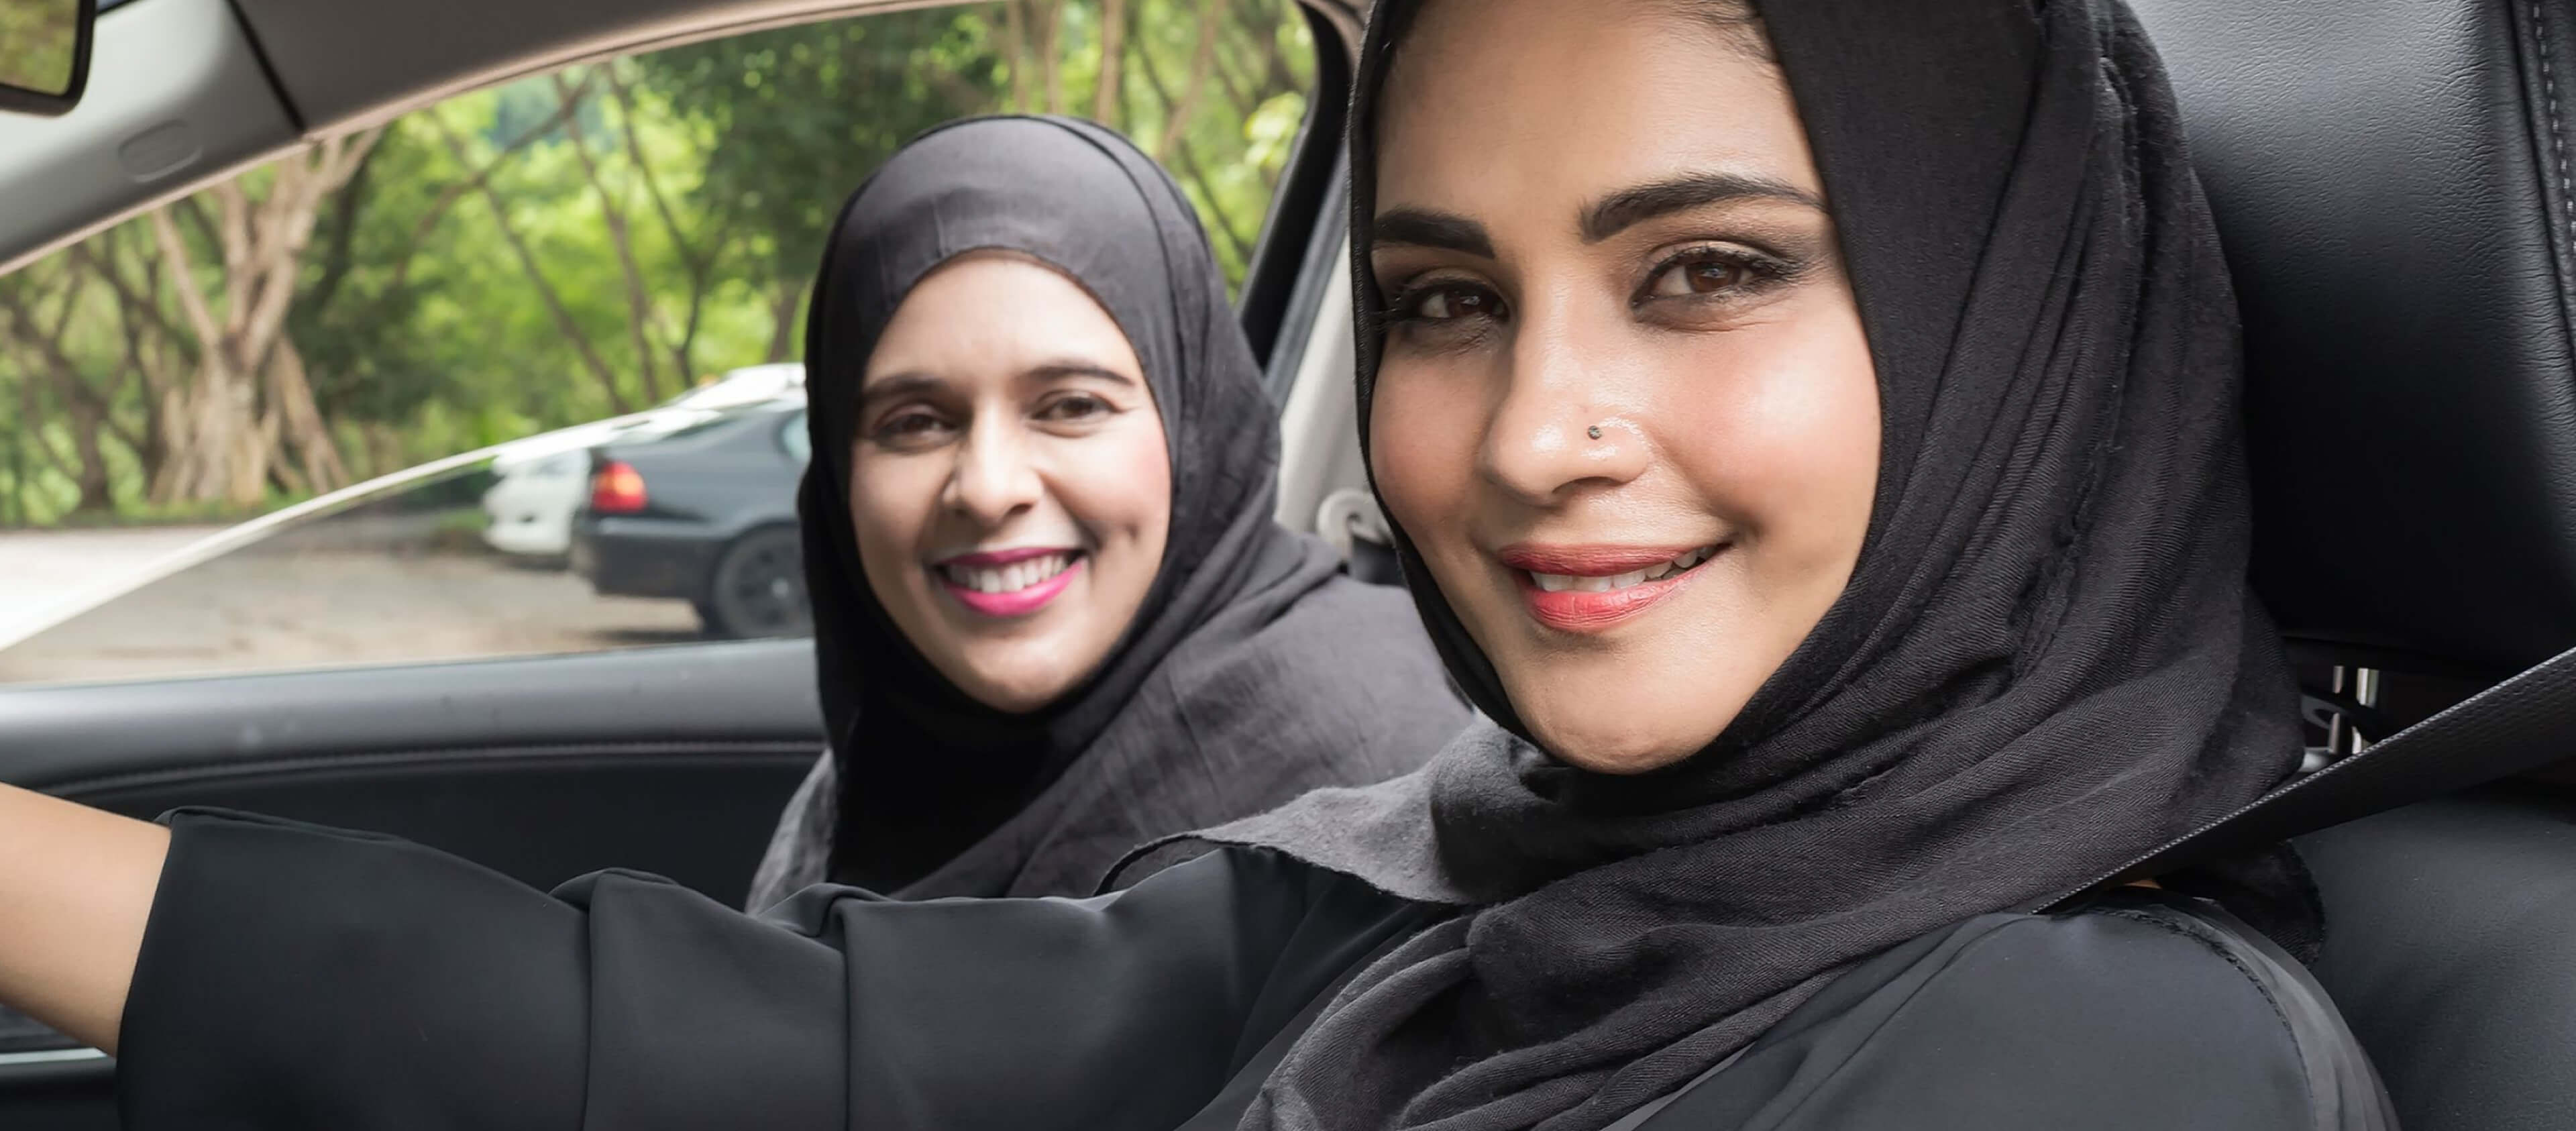 Almeny: Women Teaching Women To Drive in Saudi Arabia